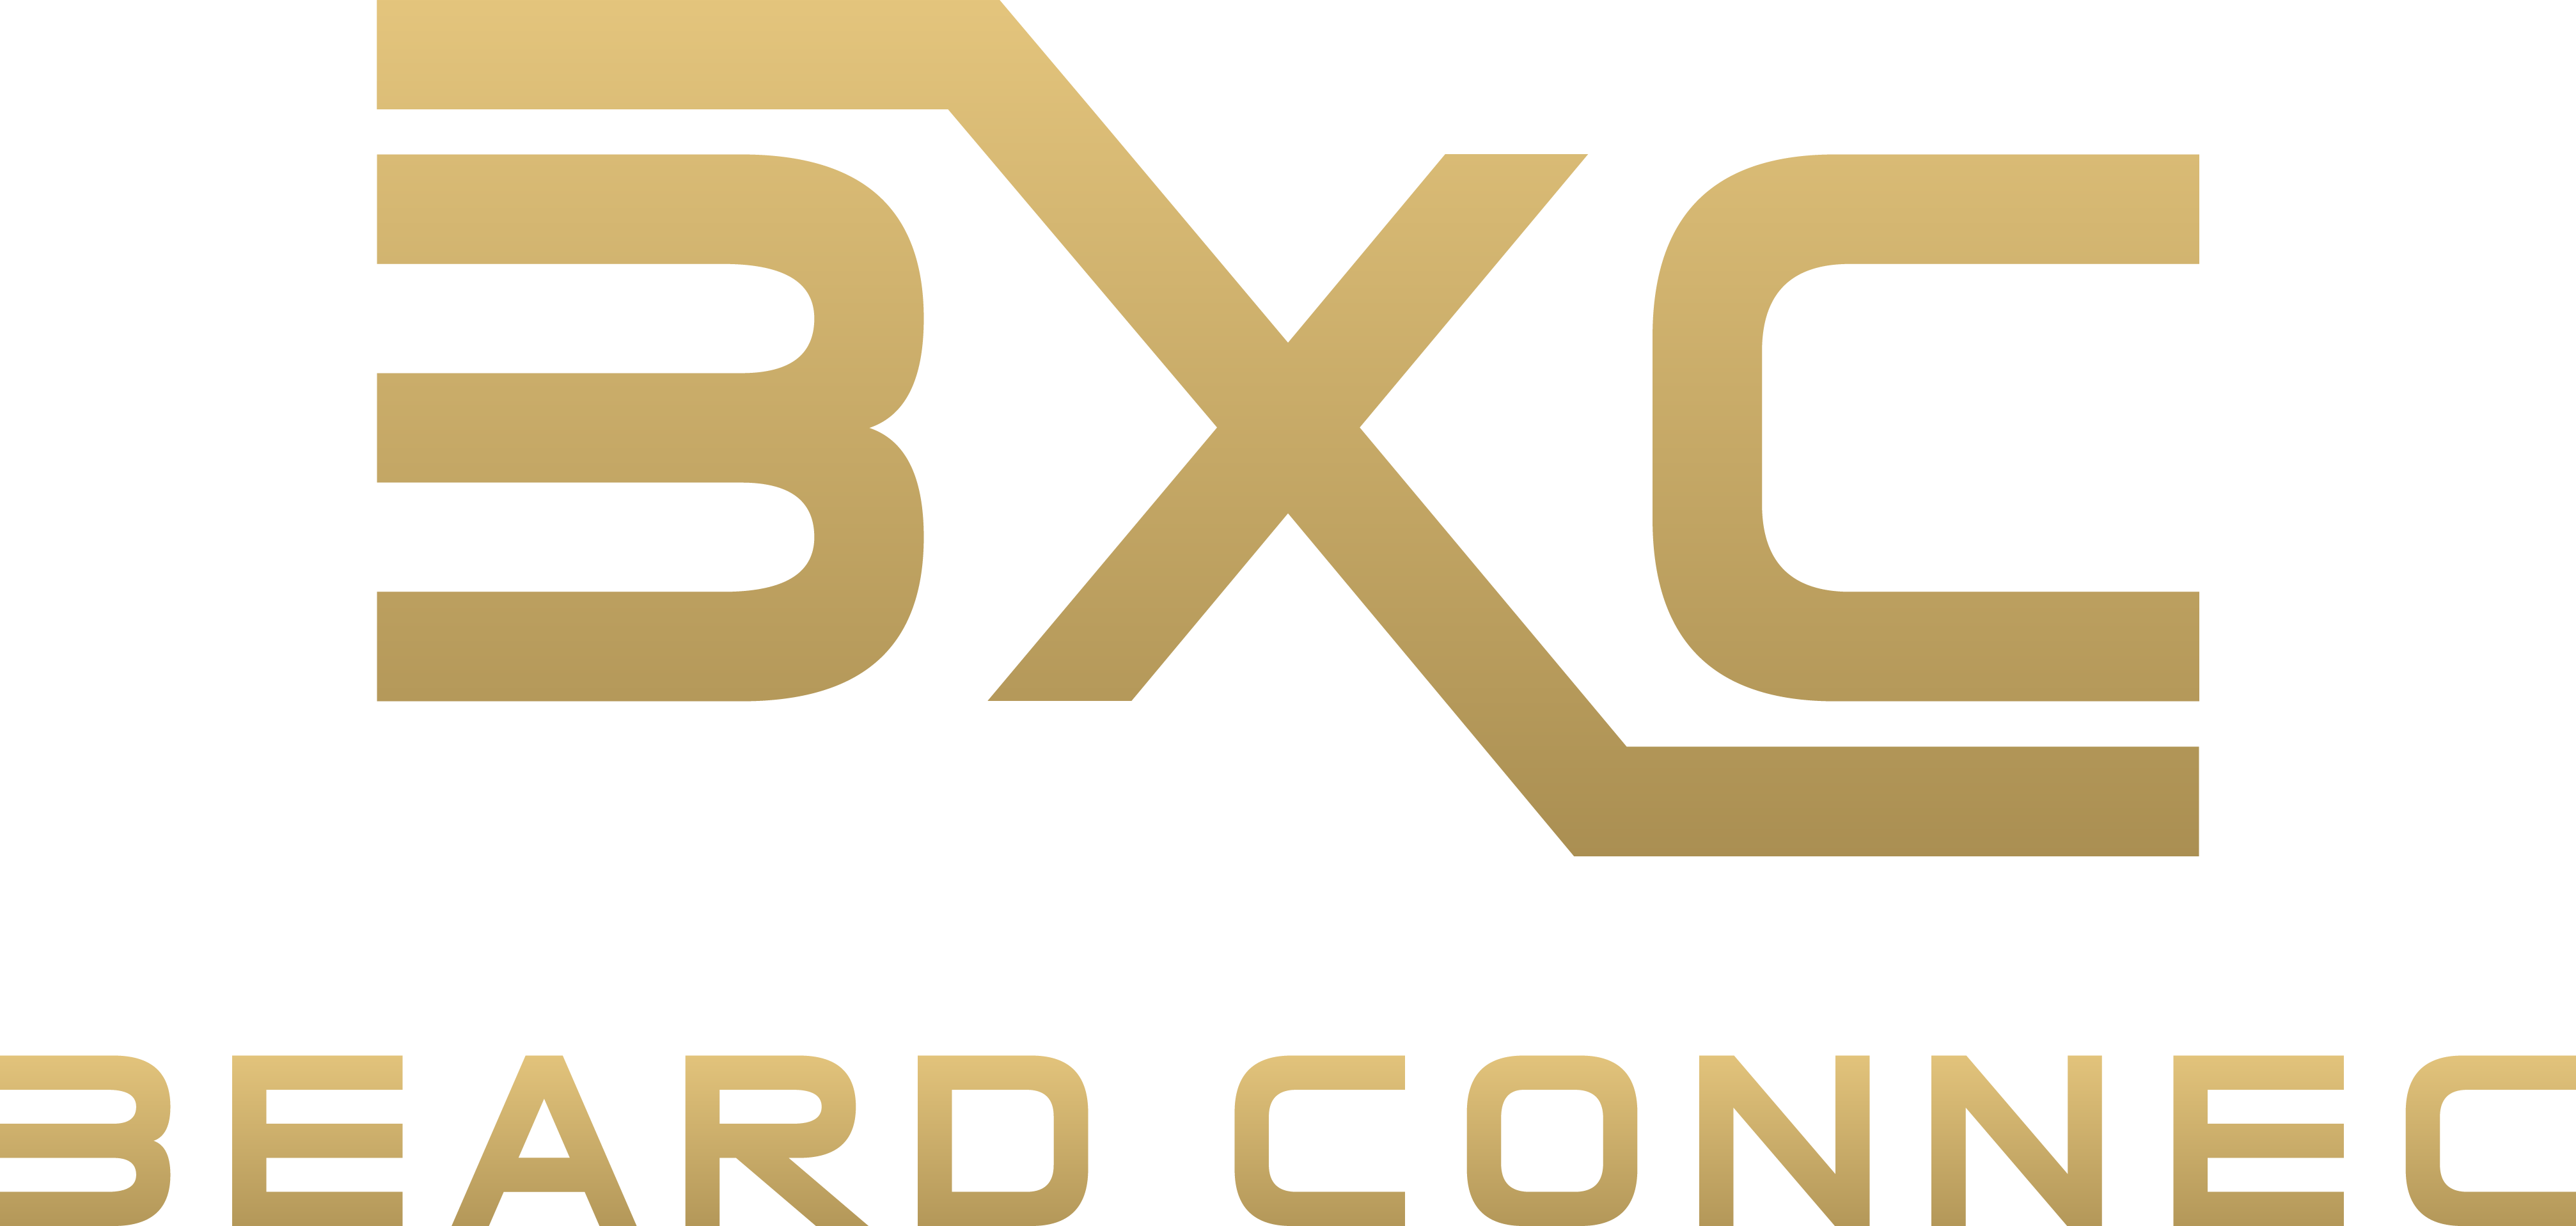 BXC Beard C Logo Transparency 1